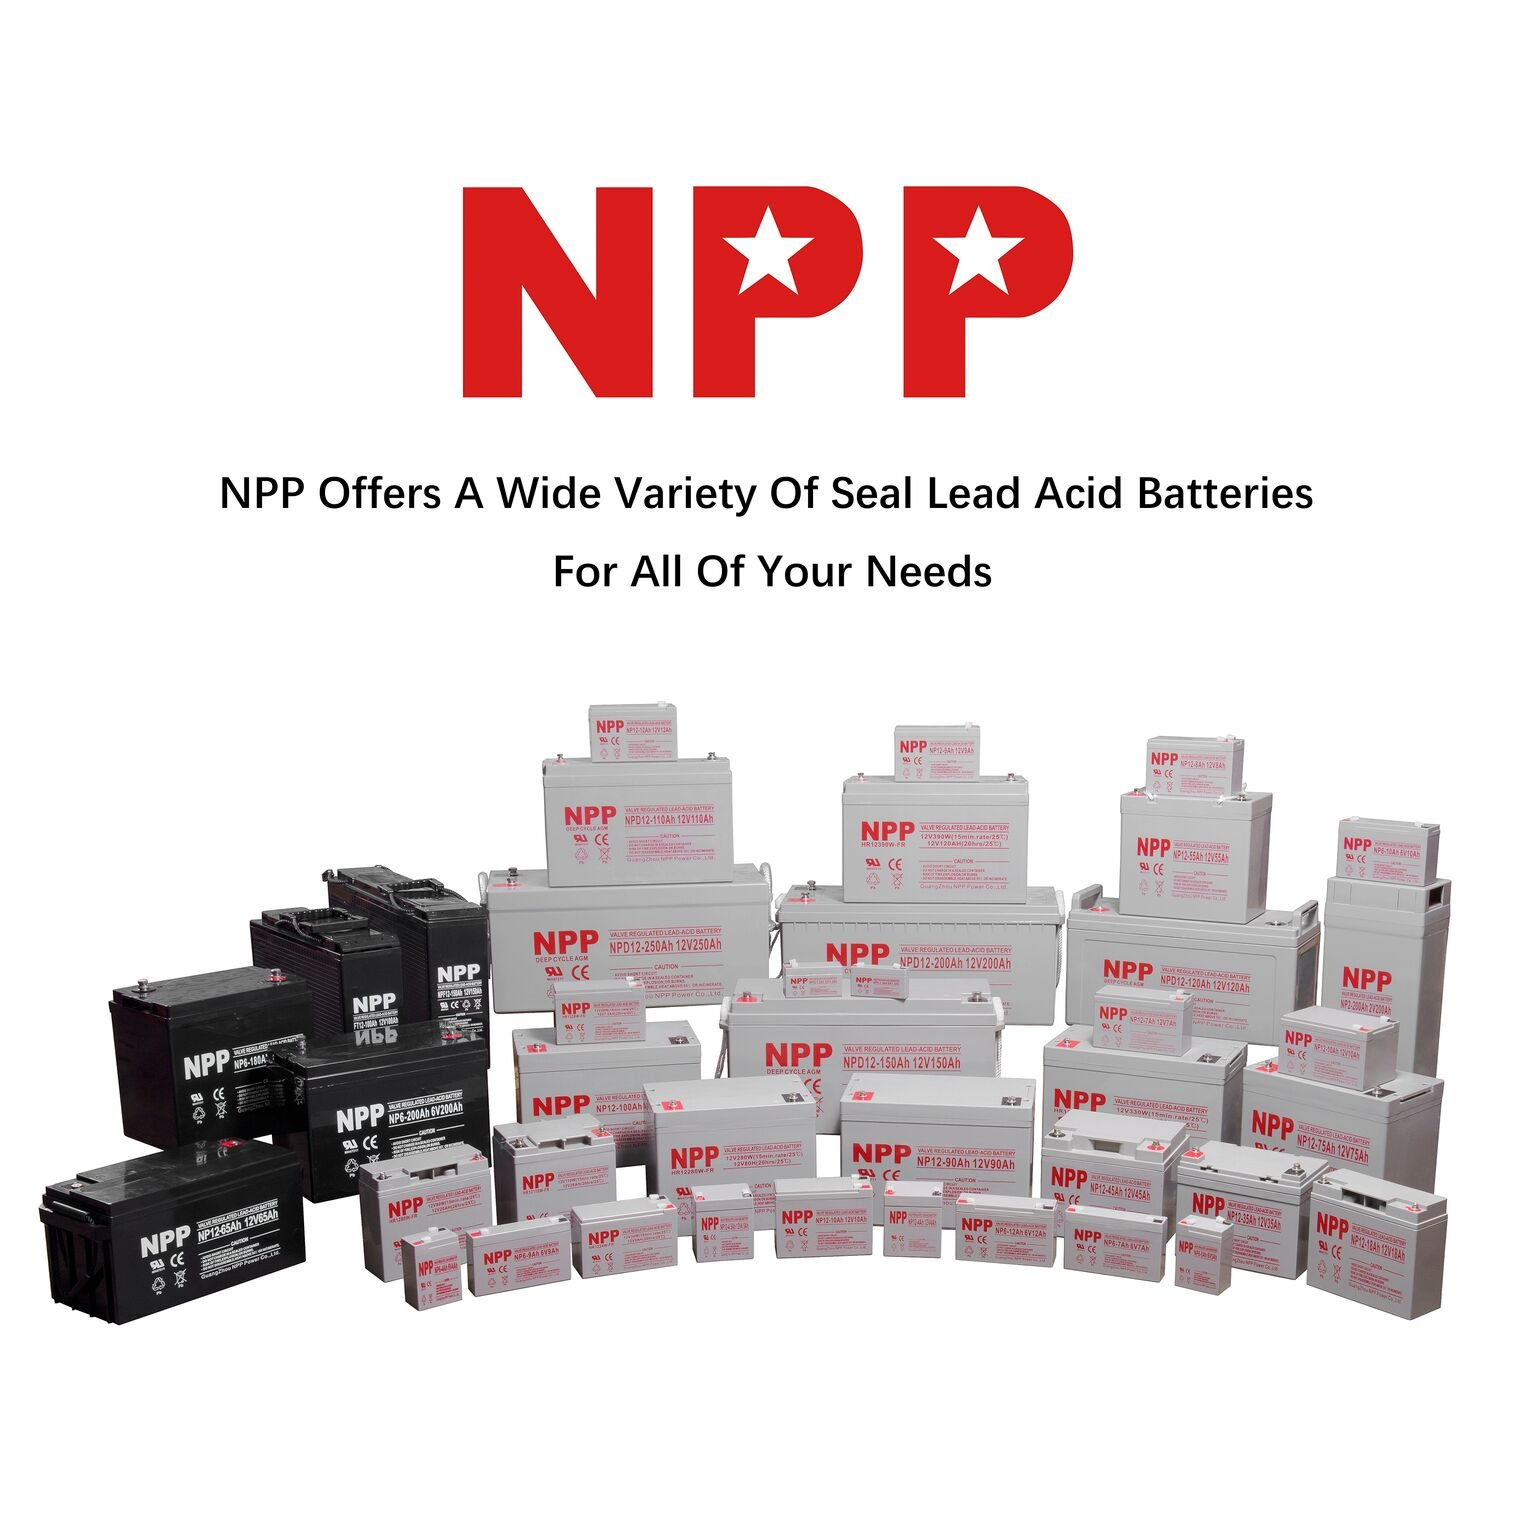 NPP FT12-125Ah Front Access Telecom Deep Cycle 12V 125 Ah Battery with Button Style Terminals by NPP (Image #4)